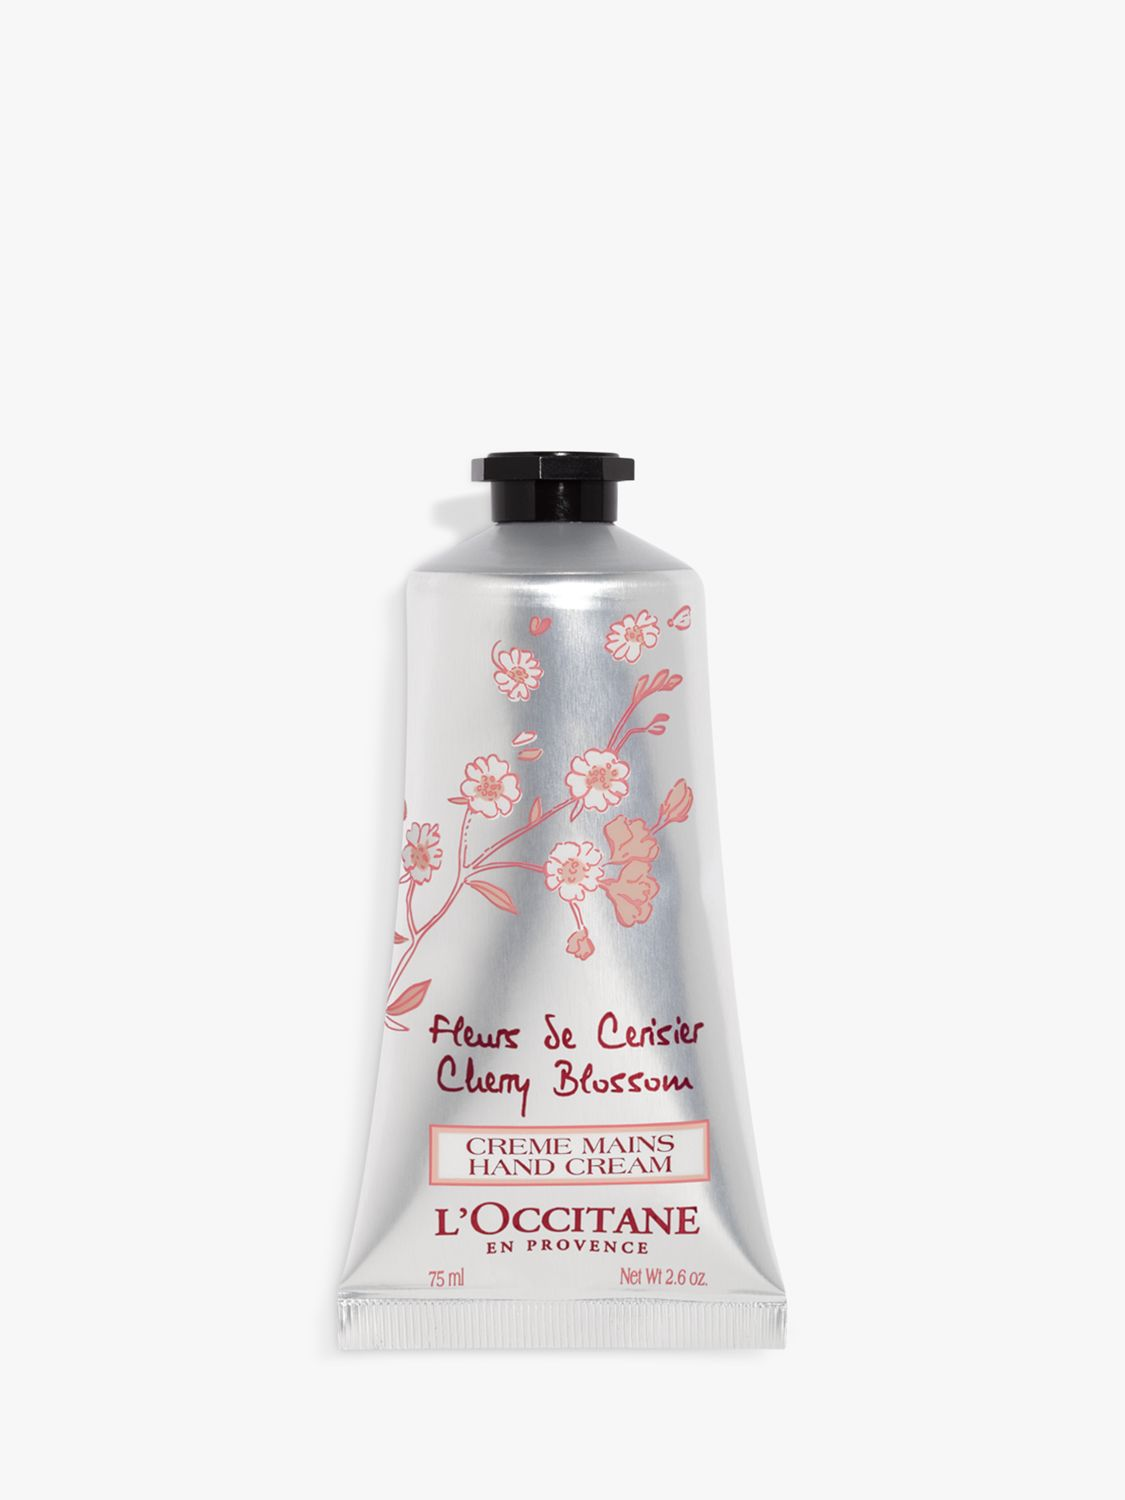 L'Occitane L'Occitane Cherry Blossom Hand Cream, 75ml